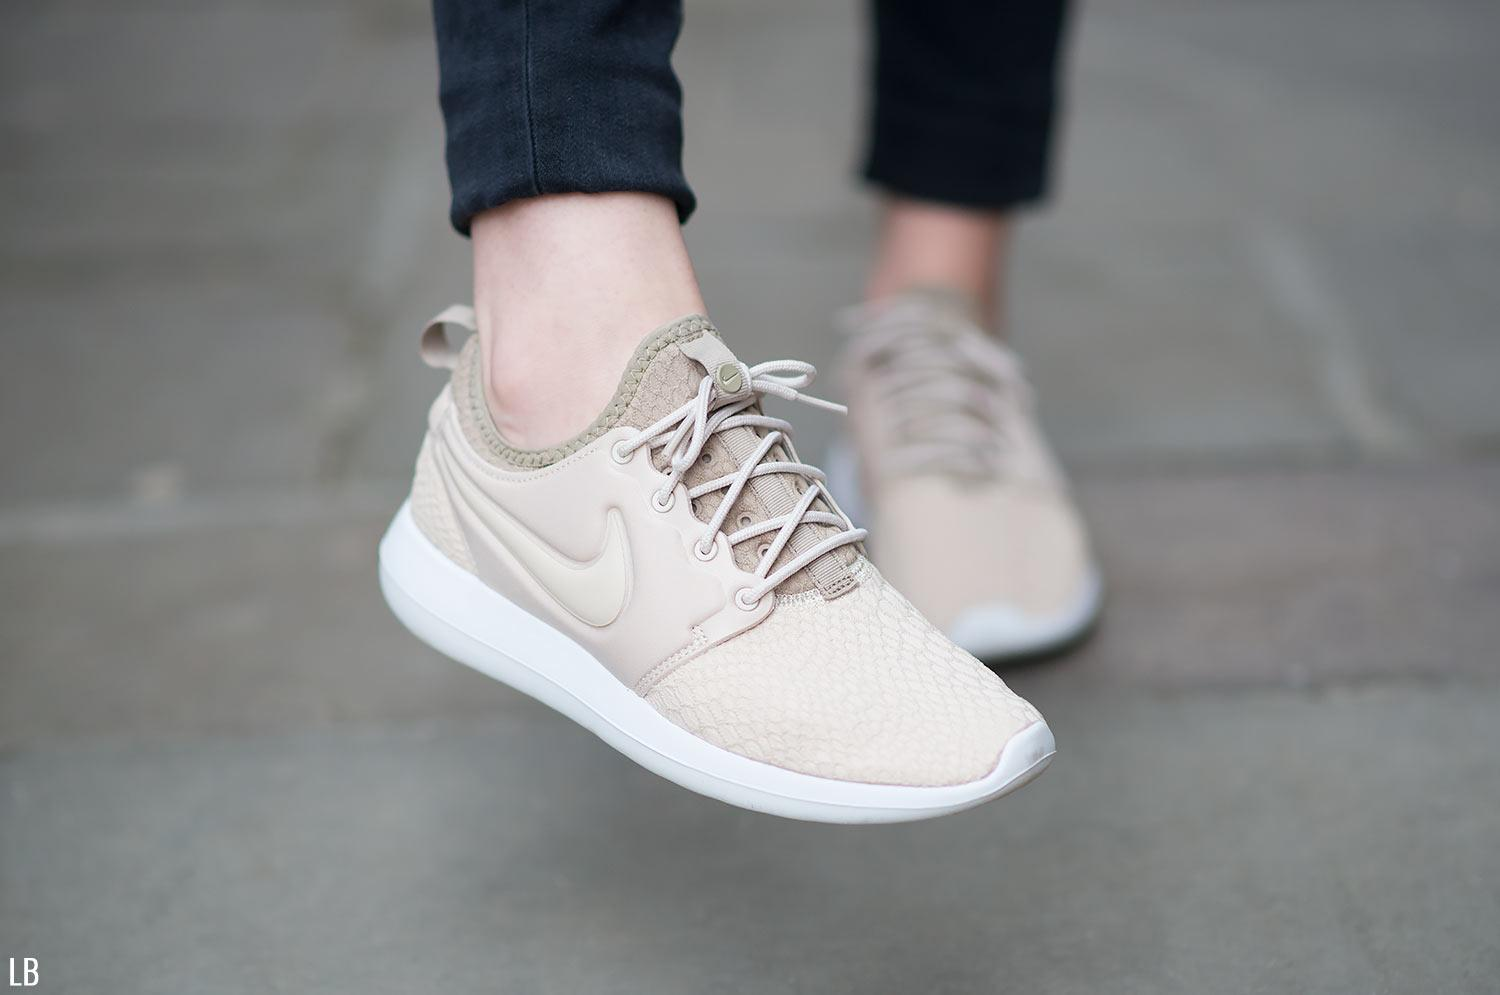 fatiga Palmadita playa  Buy Online nike roshe 2 white Cheap > OFF58% Discounted